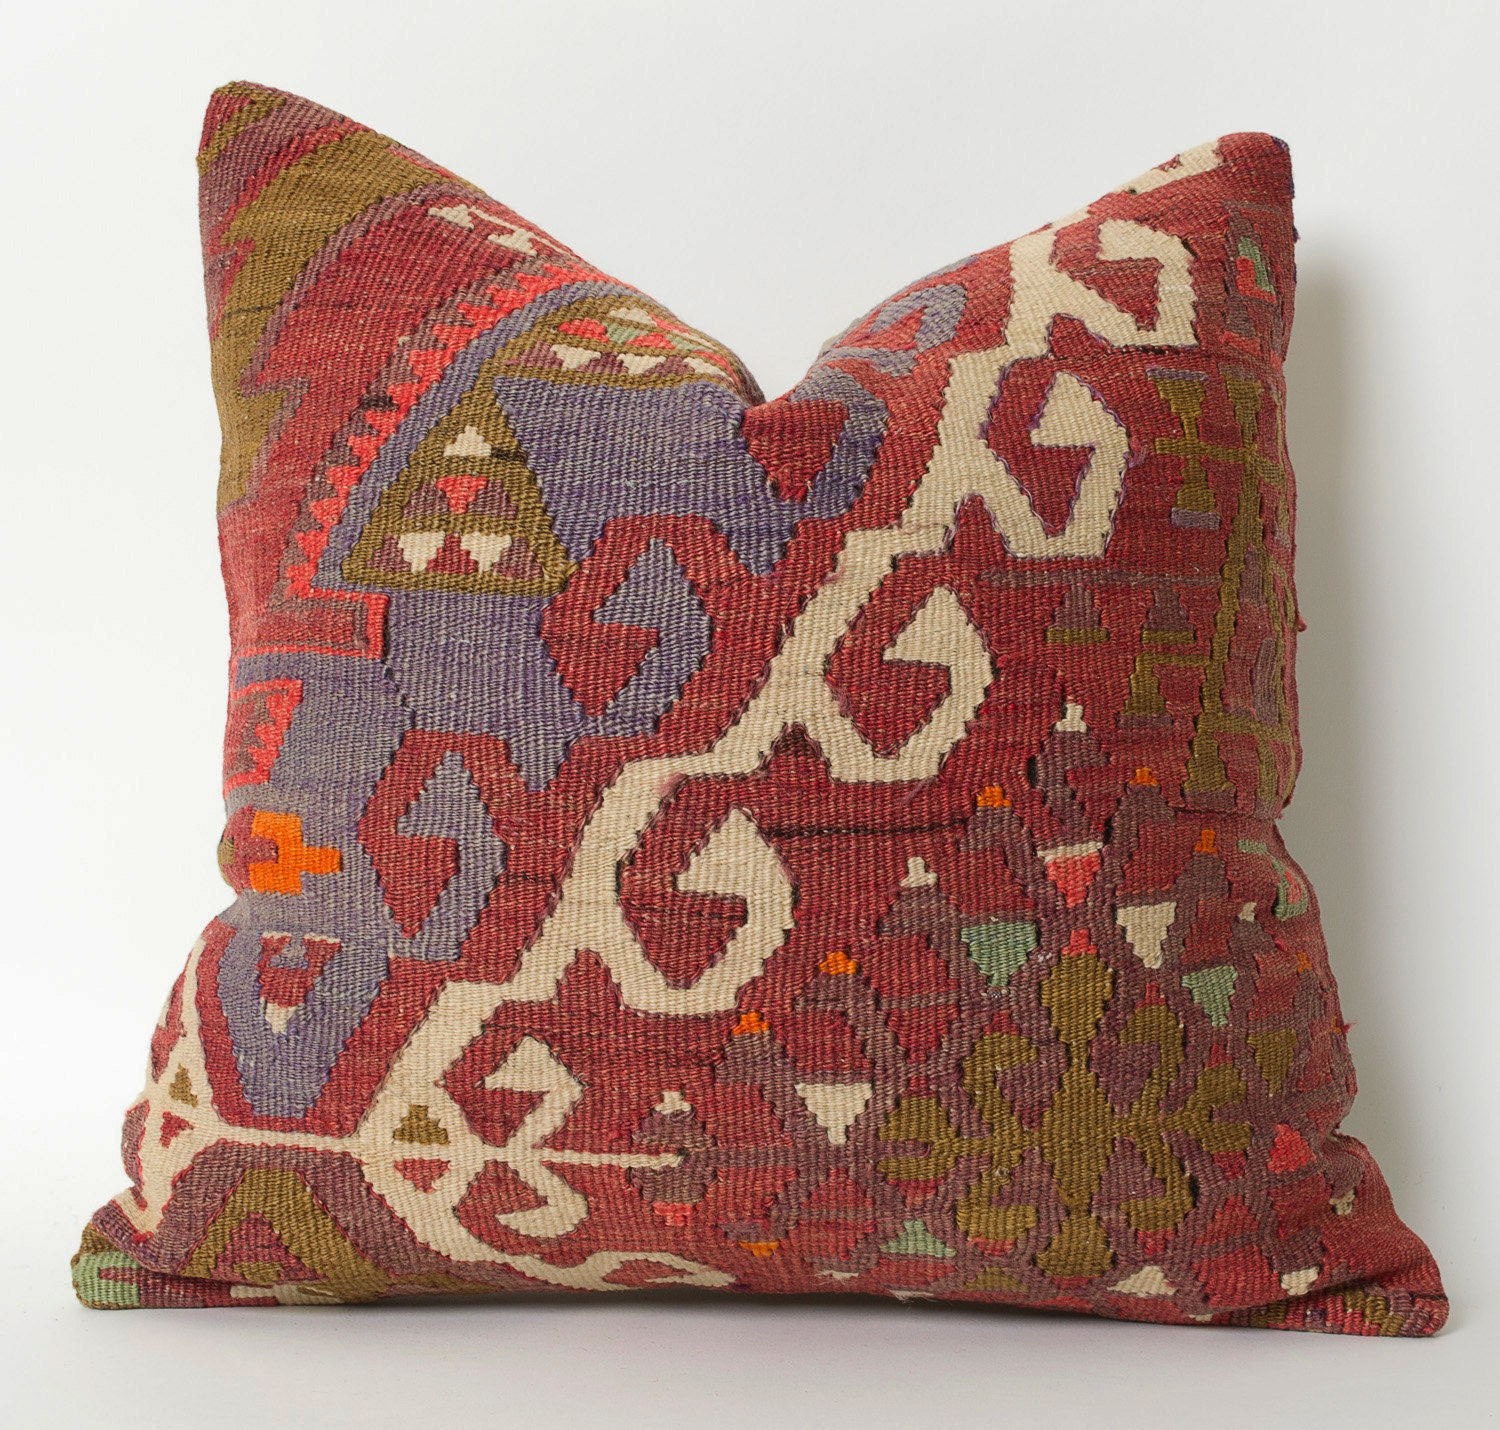 Hippie Floor Pillows : Floor Throw Kilim Pillow Cover Boho Pillow Rustic Red Tribal